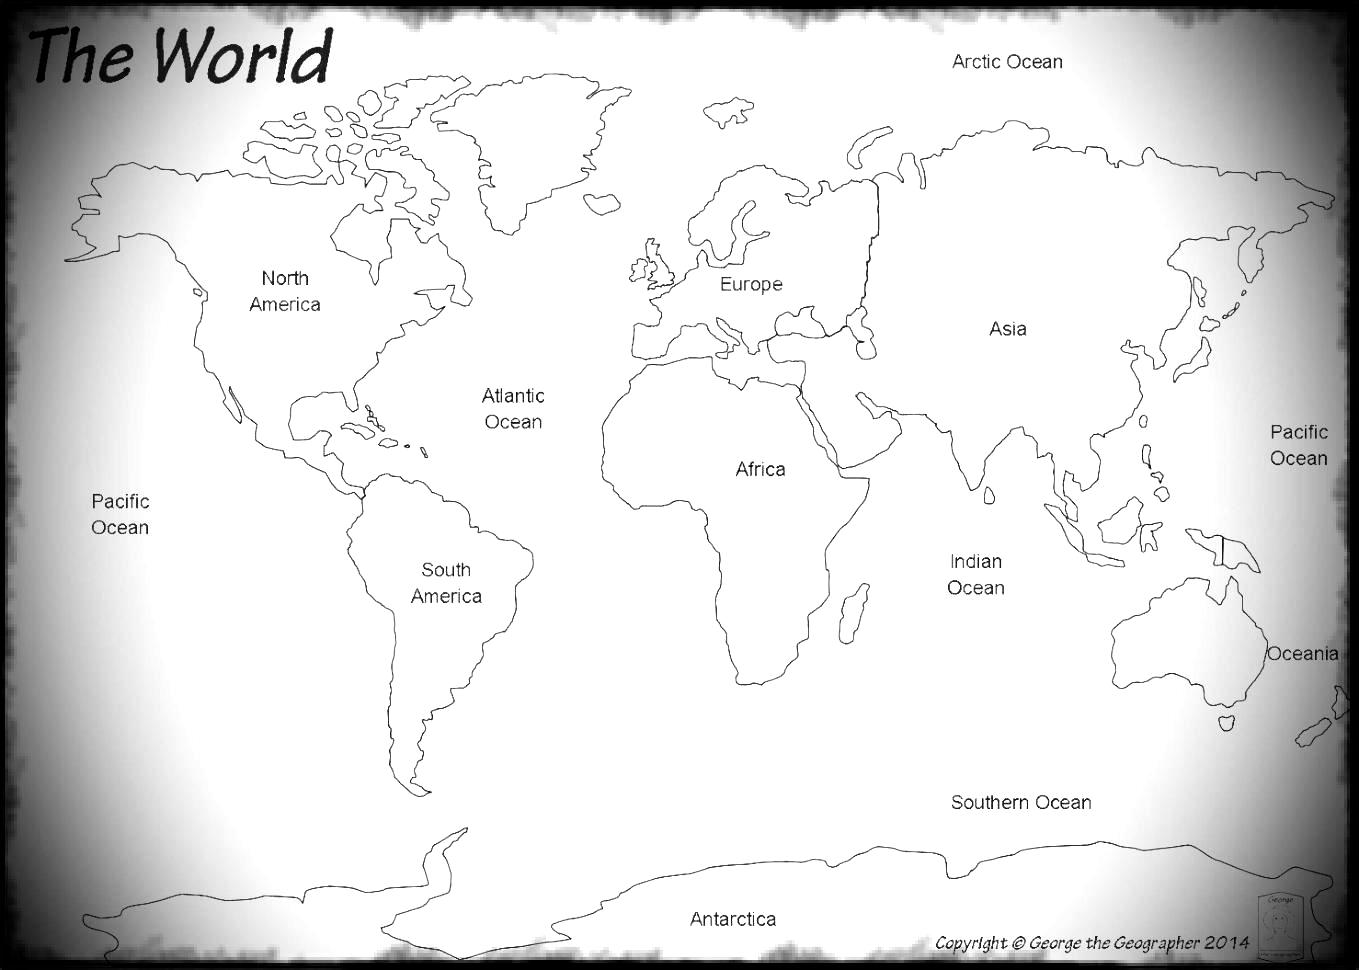 Continent clipart world political For World Kids For Maps